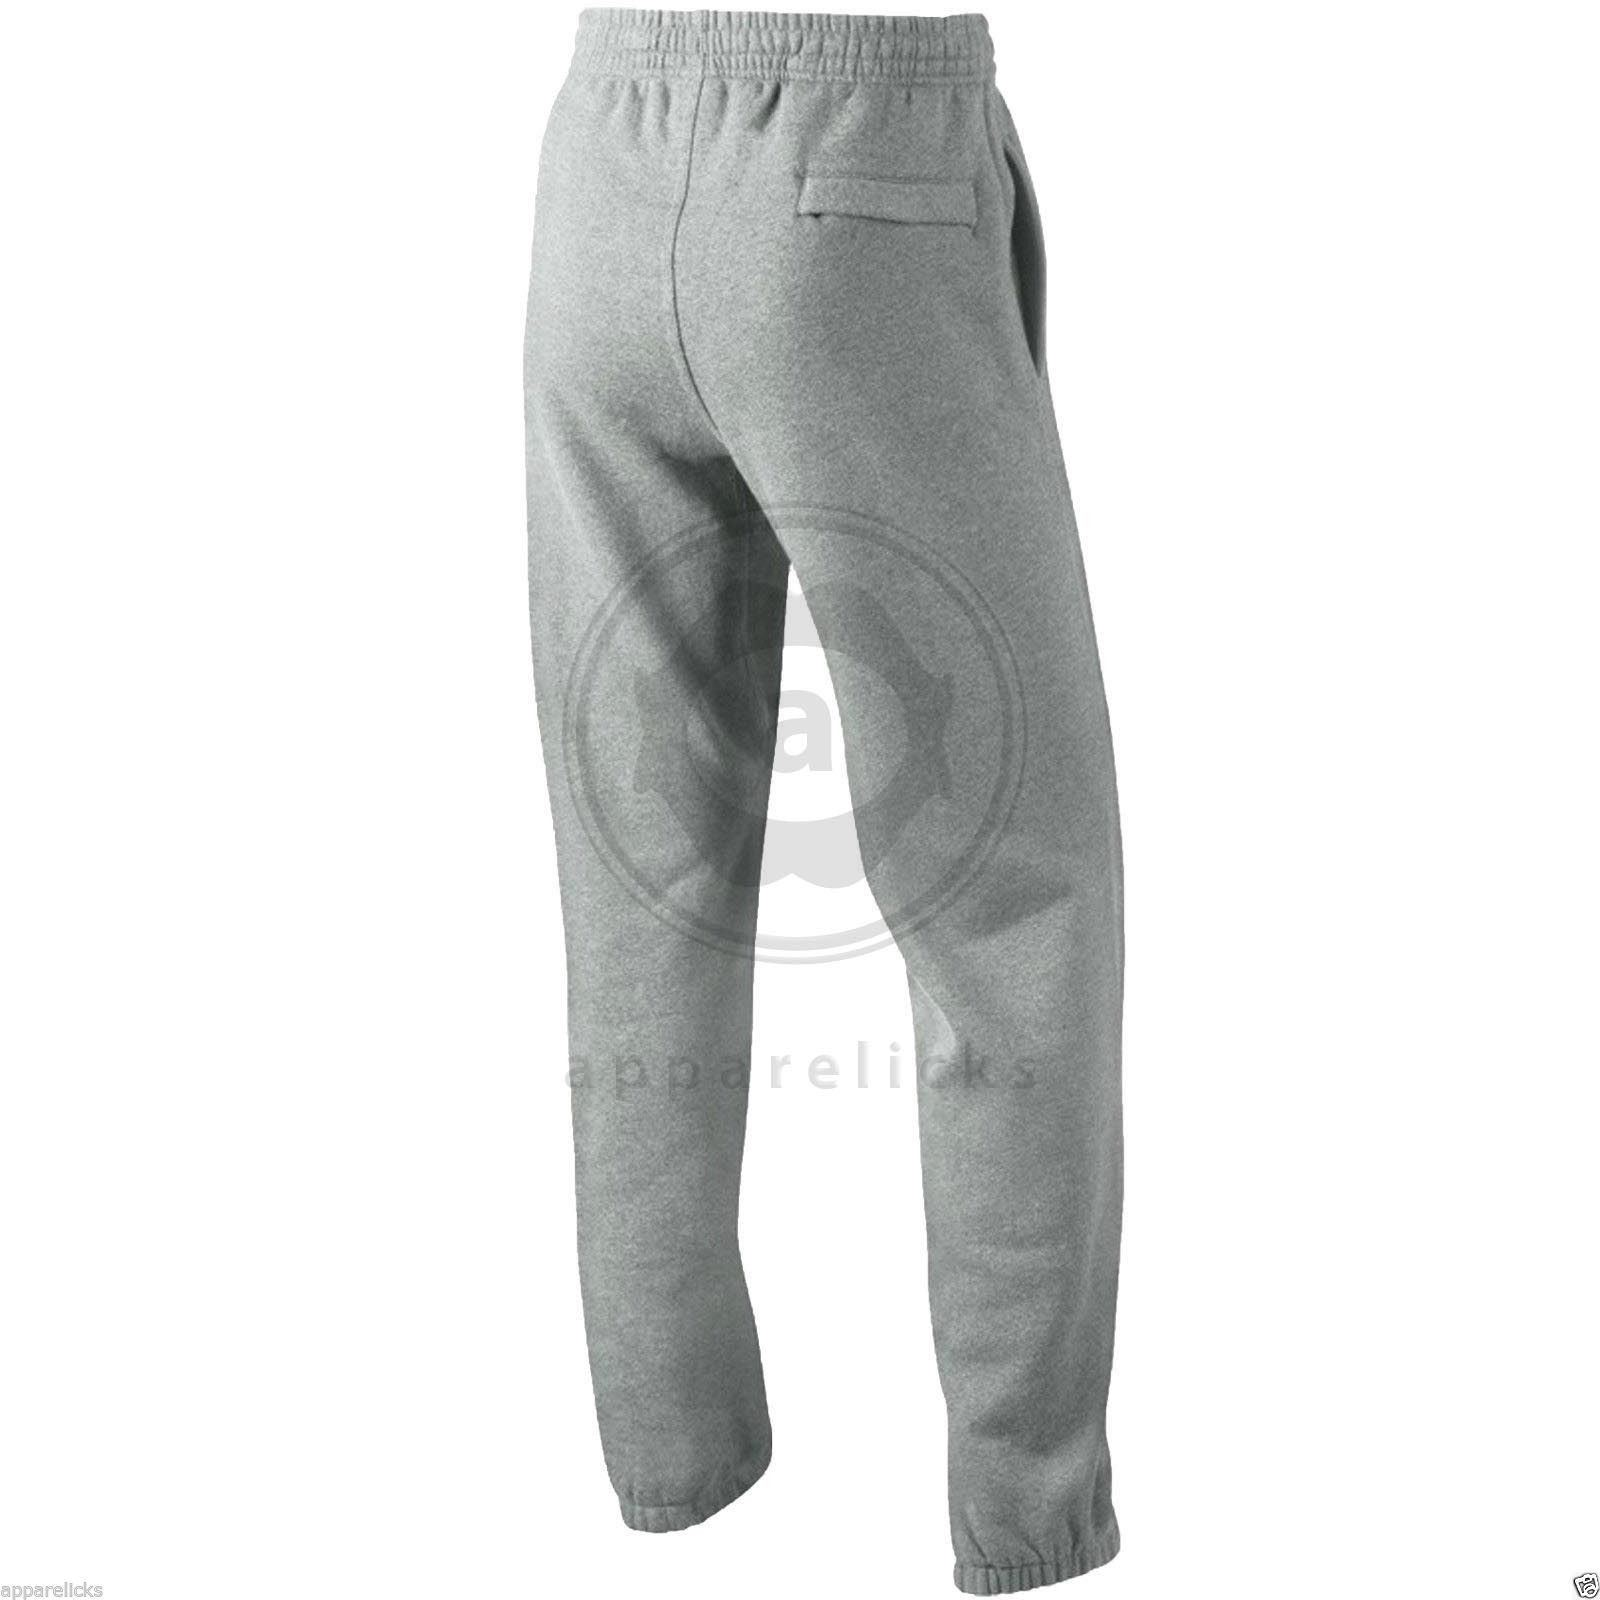 nike men's sweatpants with back pocket Sale ,up to 60% Discounts